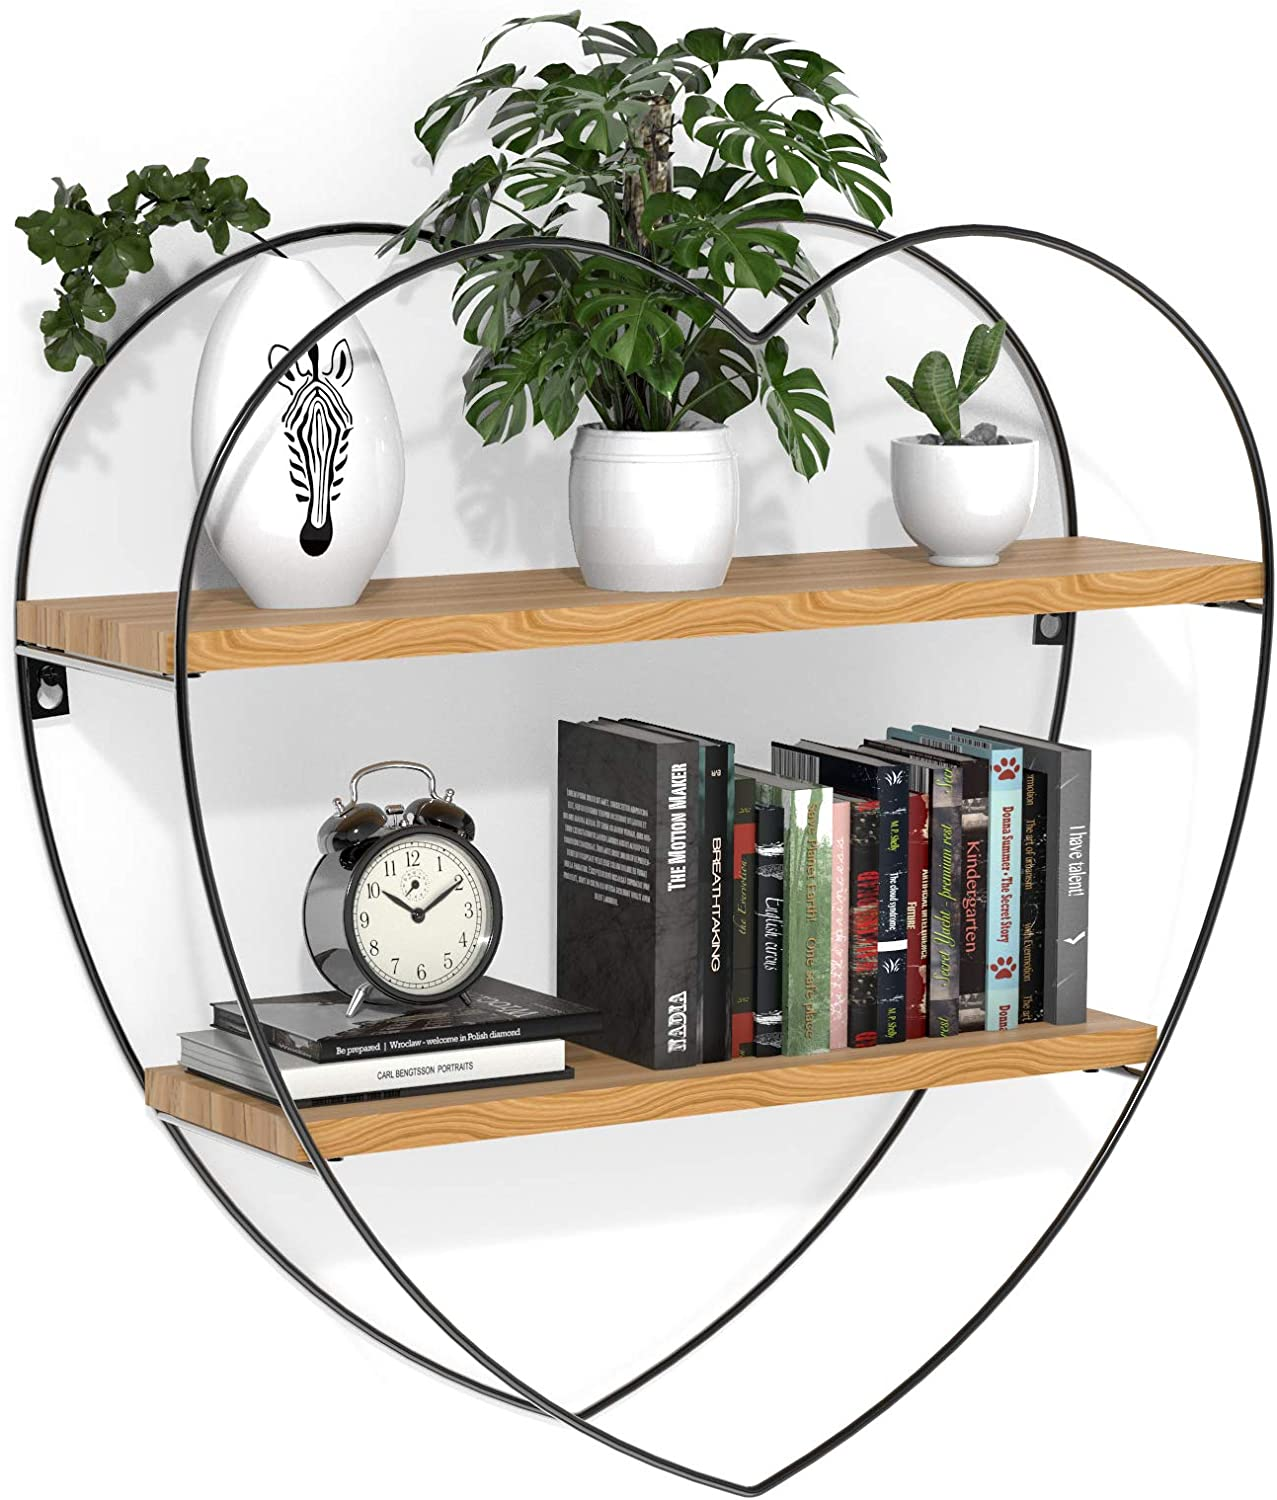 INMAN Floating Shelves for Wall, Rustic Wood Wall Shelves, Farmhouse Decorative Wood Shelves for Bathroom, Bedroom, Kitchen Decor and Storage, Metal Frame, Heart Shape